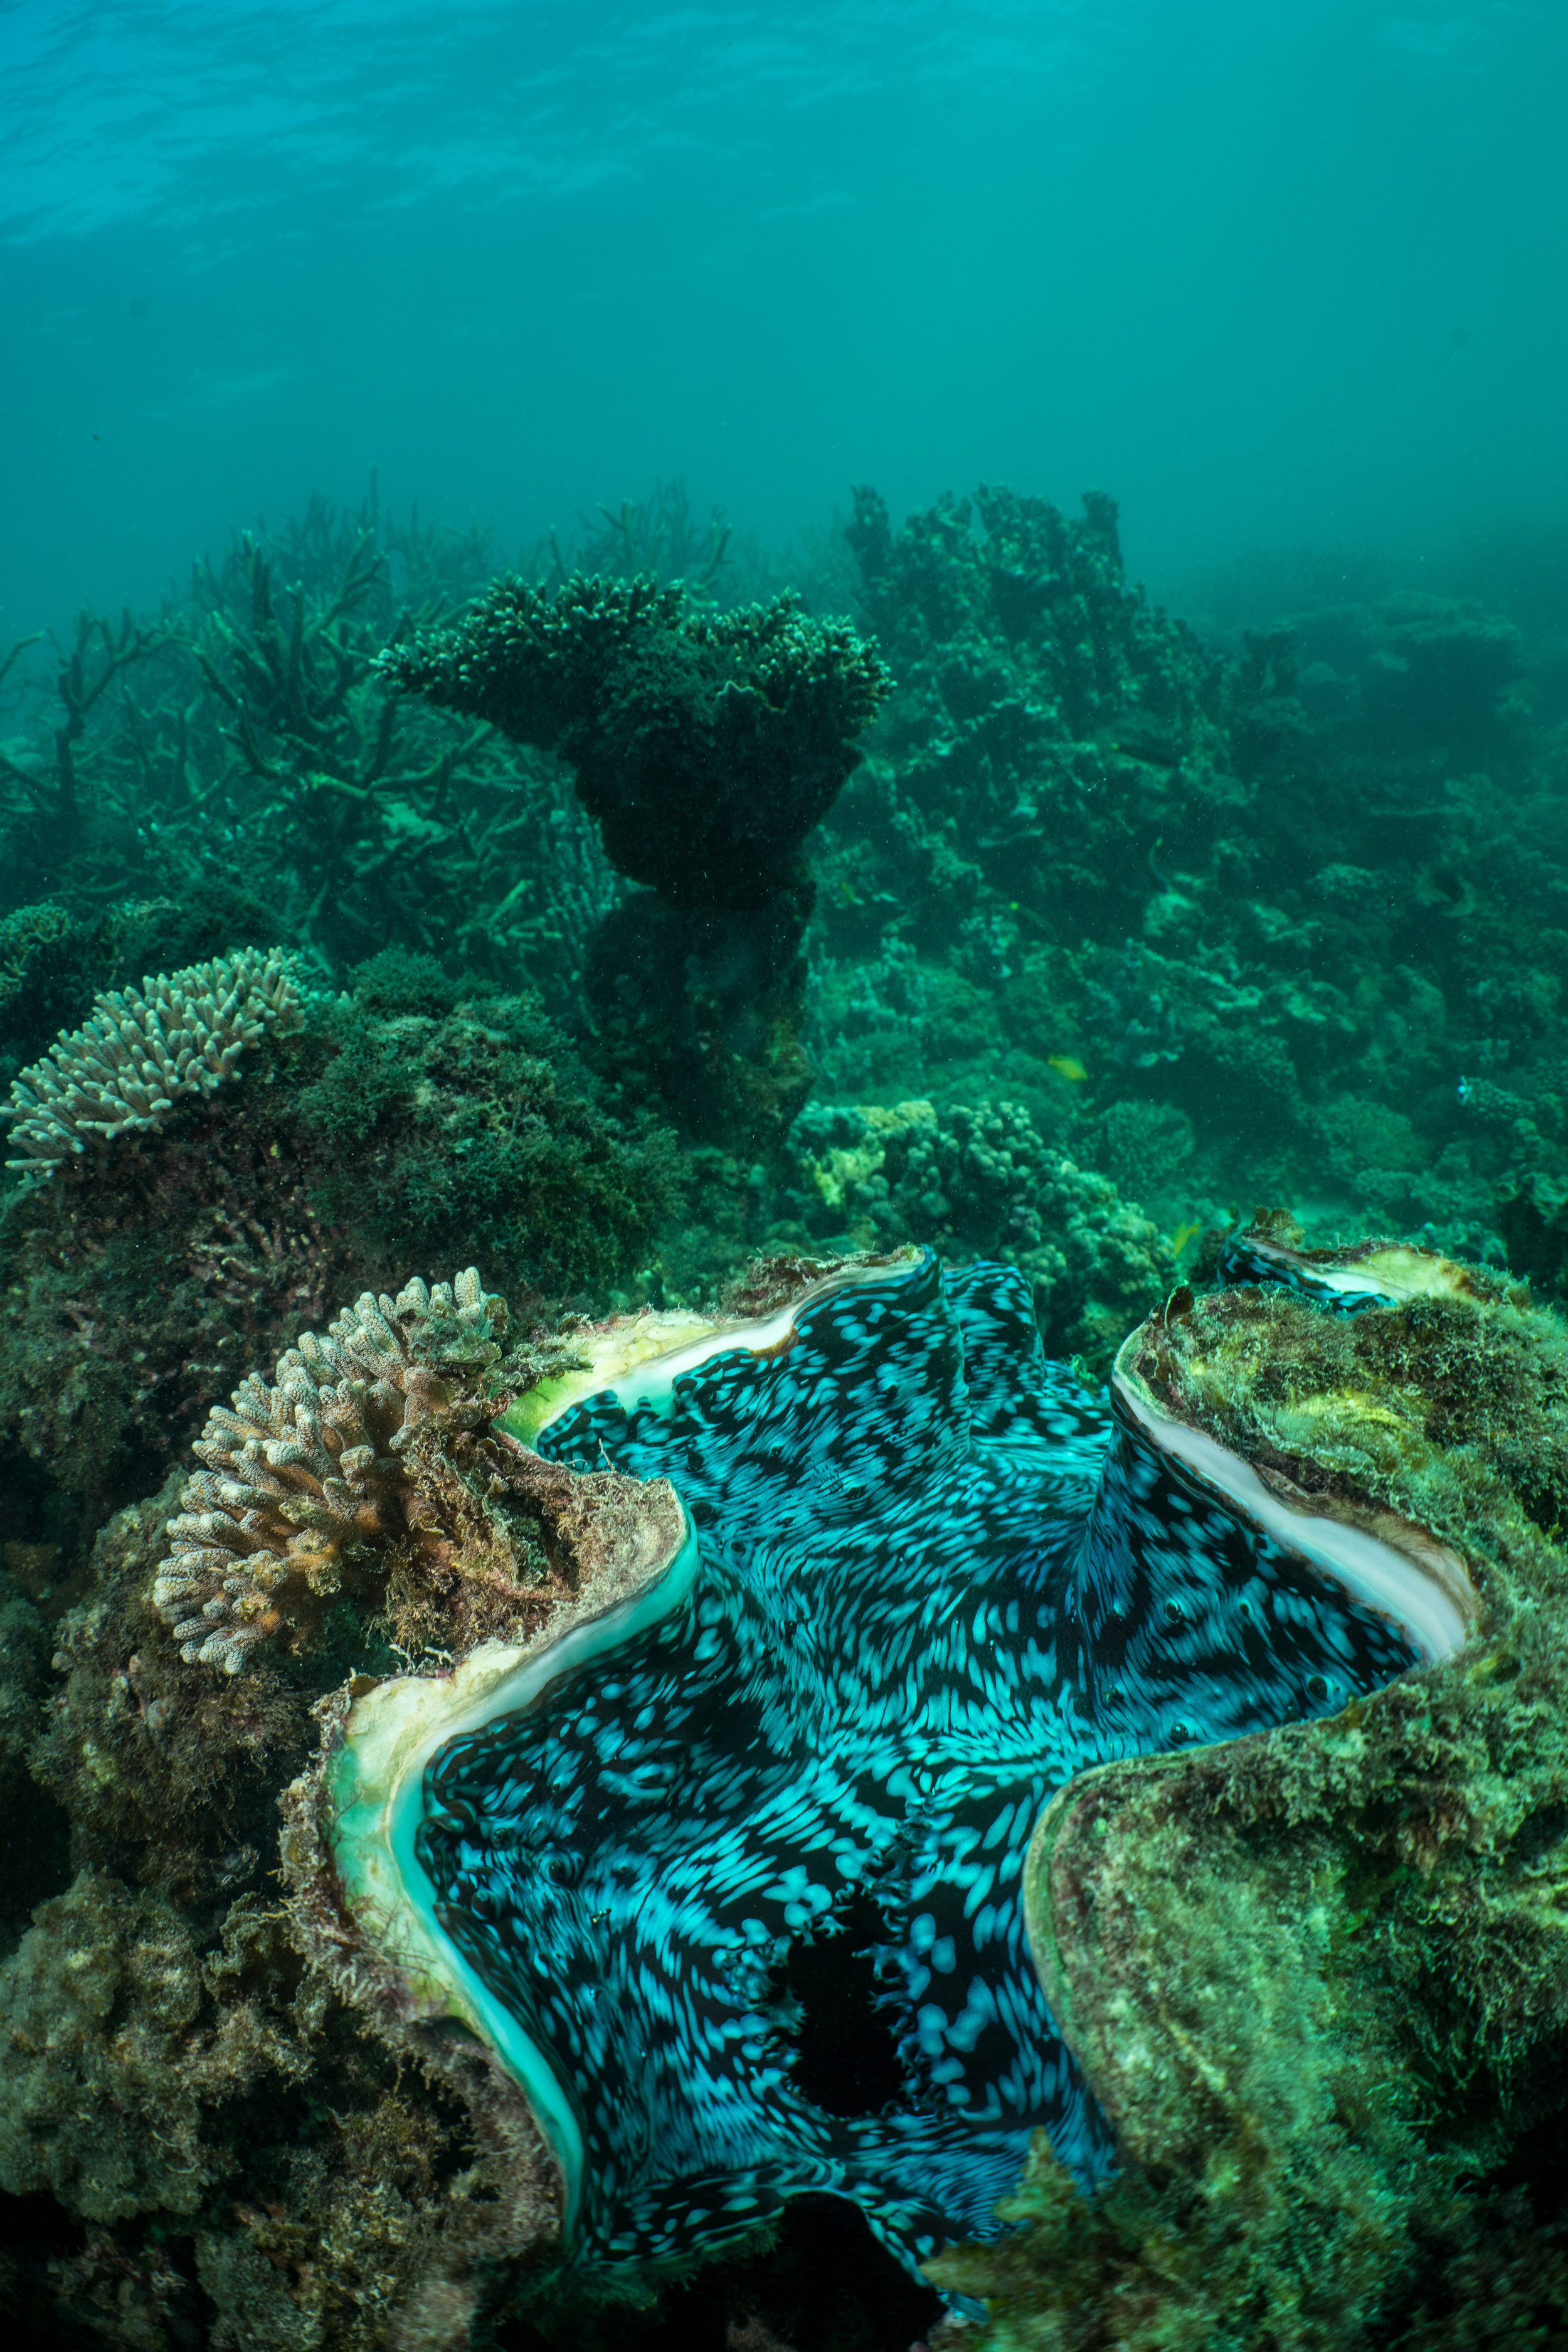 Giant Clams are so large that they themselves add structure to a coral reef. They can weigh up to 440 pounds, making them the worlds largest mollusk. Many will corals growing all over their shells. This helps them to blend into the reef and look less conspicuous.